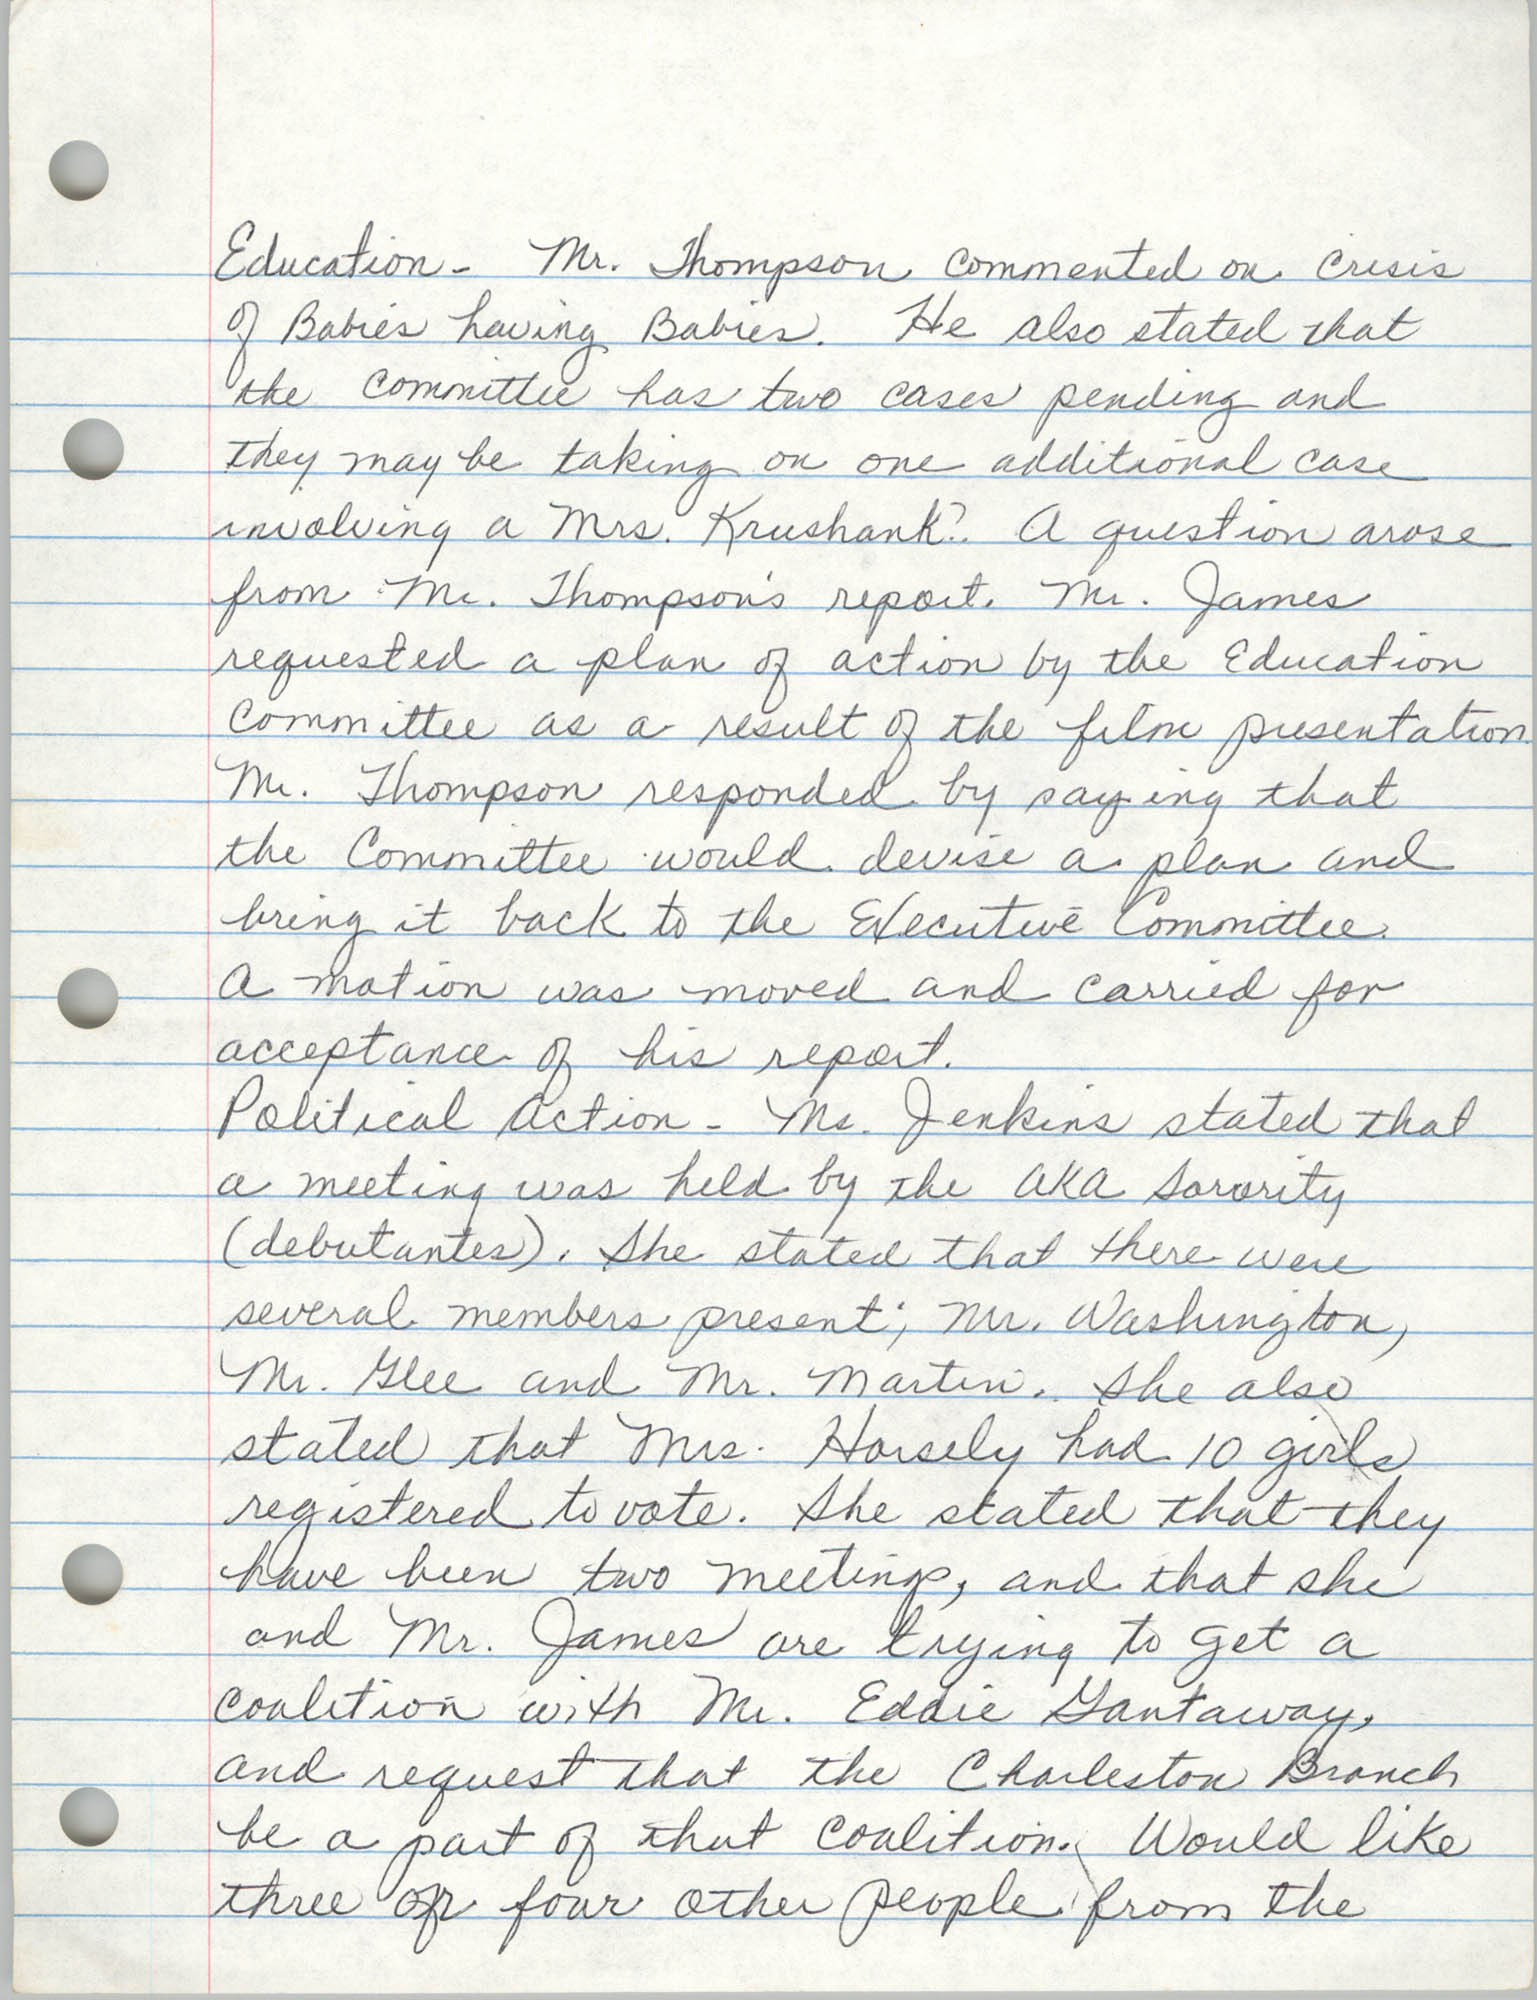 Minutes, Charleston Branch of the NAACP, General Membership Meeting, April 24, 1986, Page 6